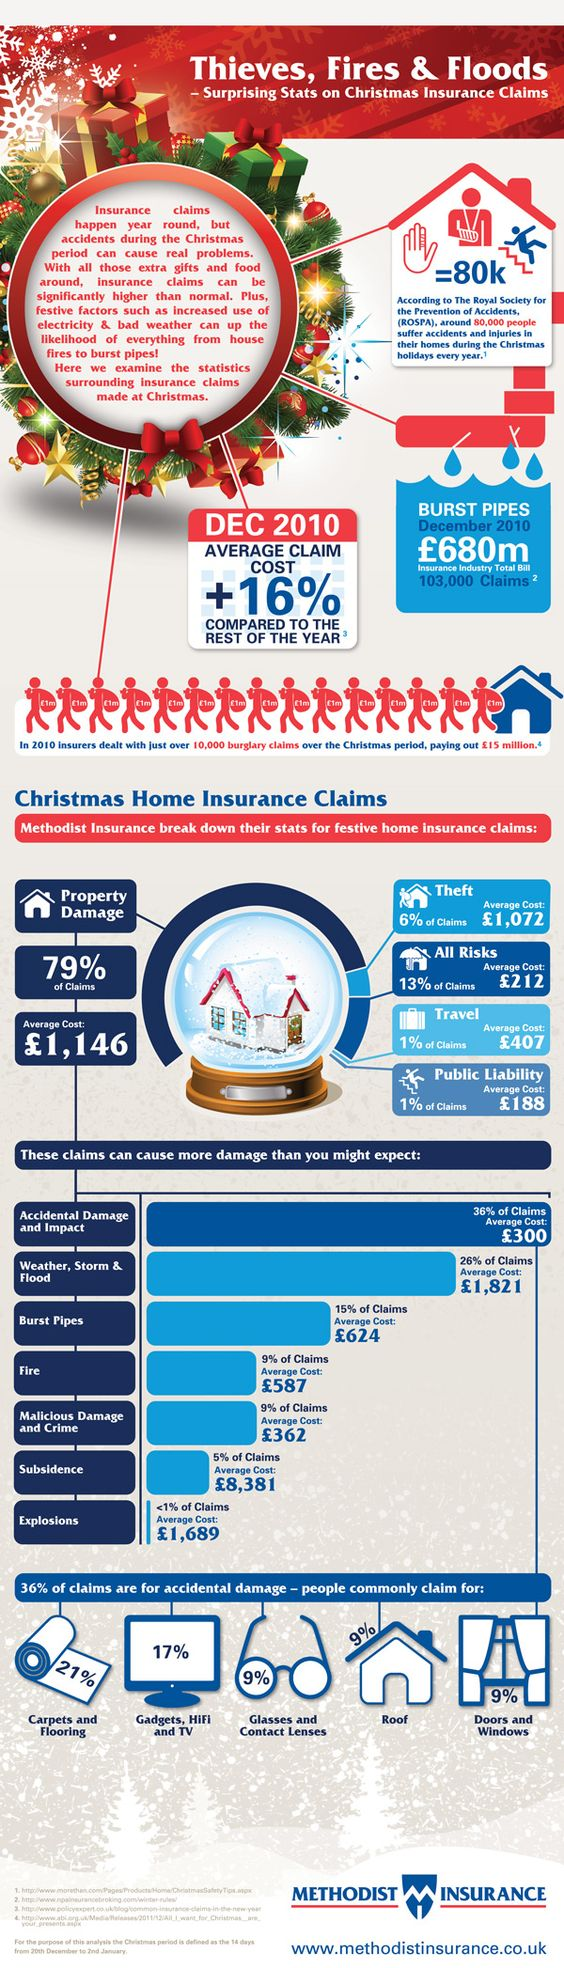 Christmas Insurance Claims - Methodist Insurance would like to raise awareness of the causes of Christmas home insurance claims. Insurance claims happen year round but accidents during the Christmas period can cause real problems at the time you want them least. The infographic has been created to summarize the key facts an